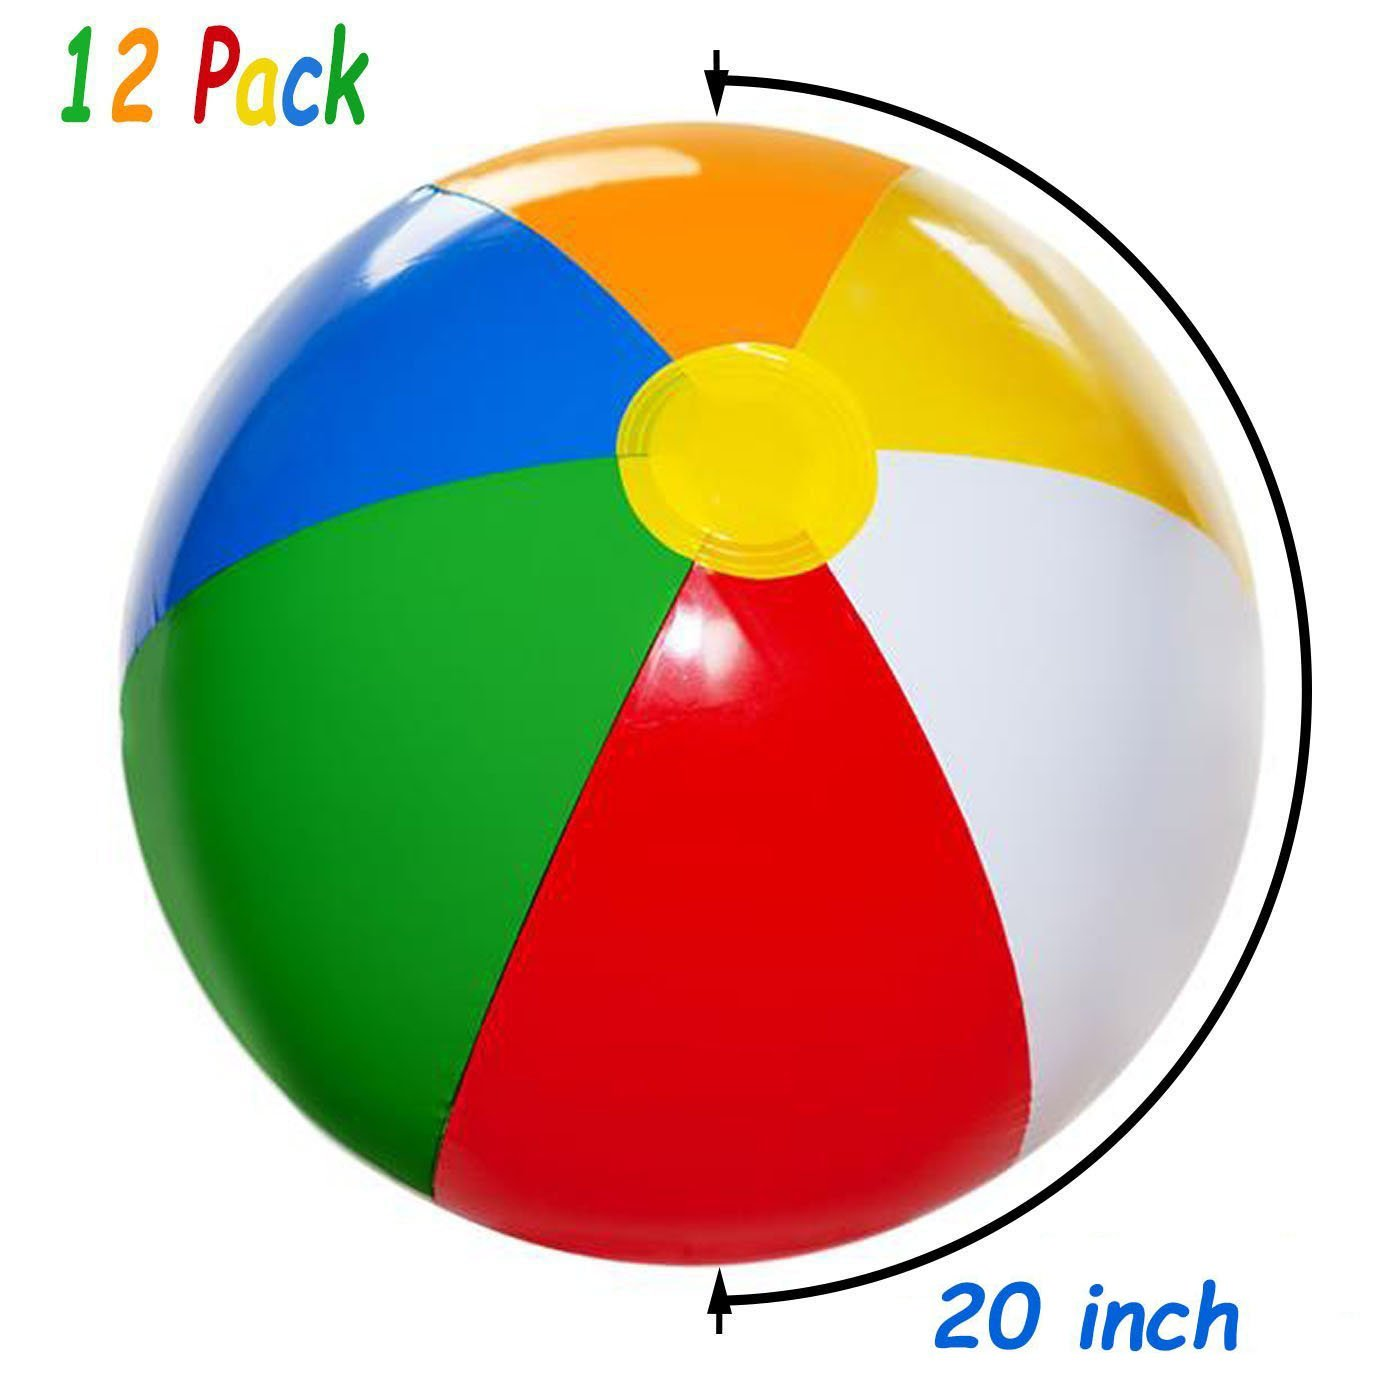 4E's Novelty Inflatable Beach Balls Pack of 12 Bulk Large 20-inch, Summer Beach & Pool Party Supplies, Beach Ball for Kids Toddlers Boys Girls by 4E's Novelty